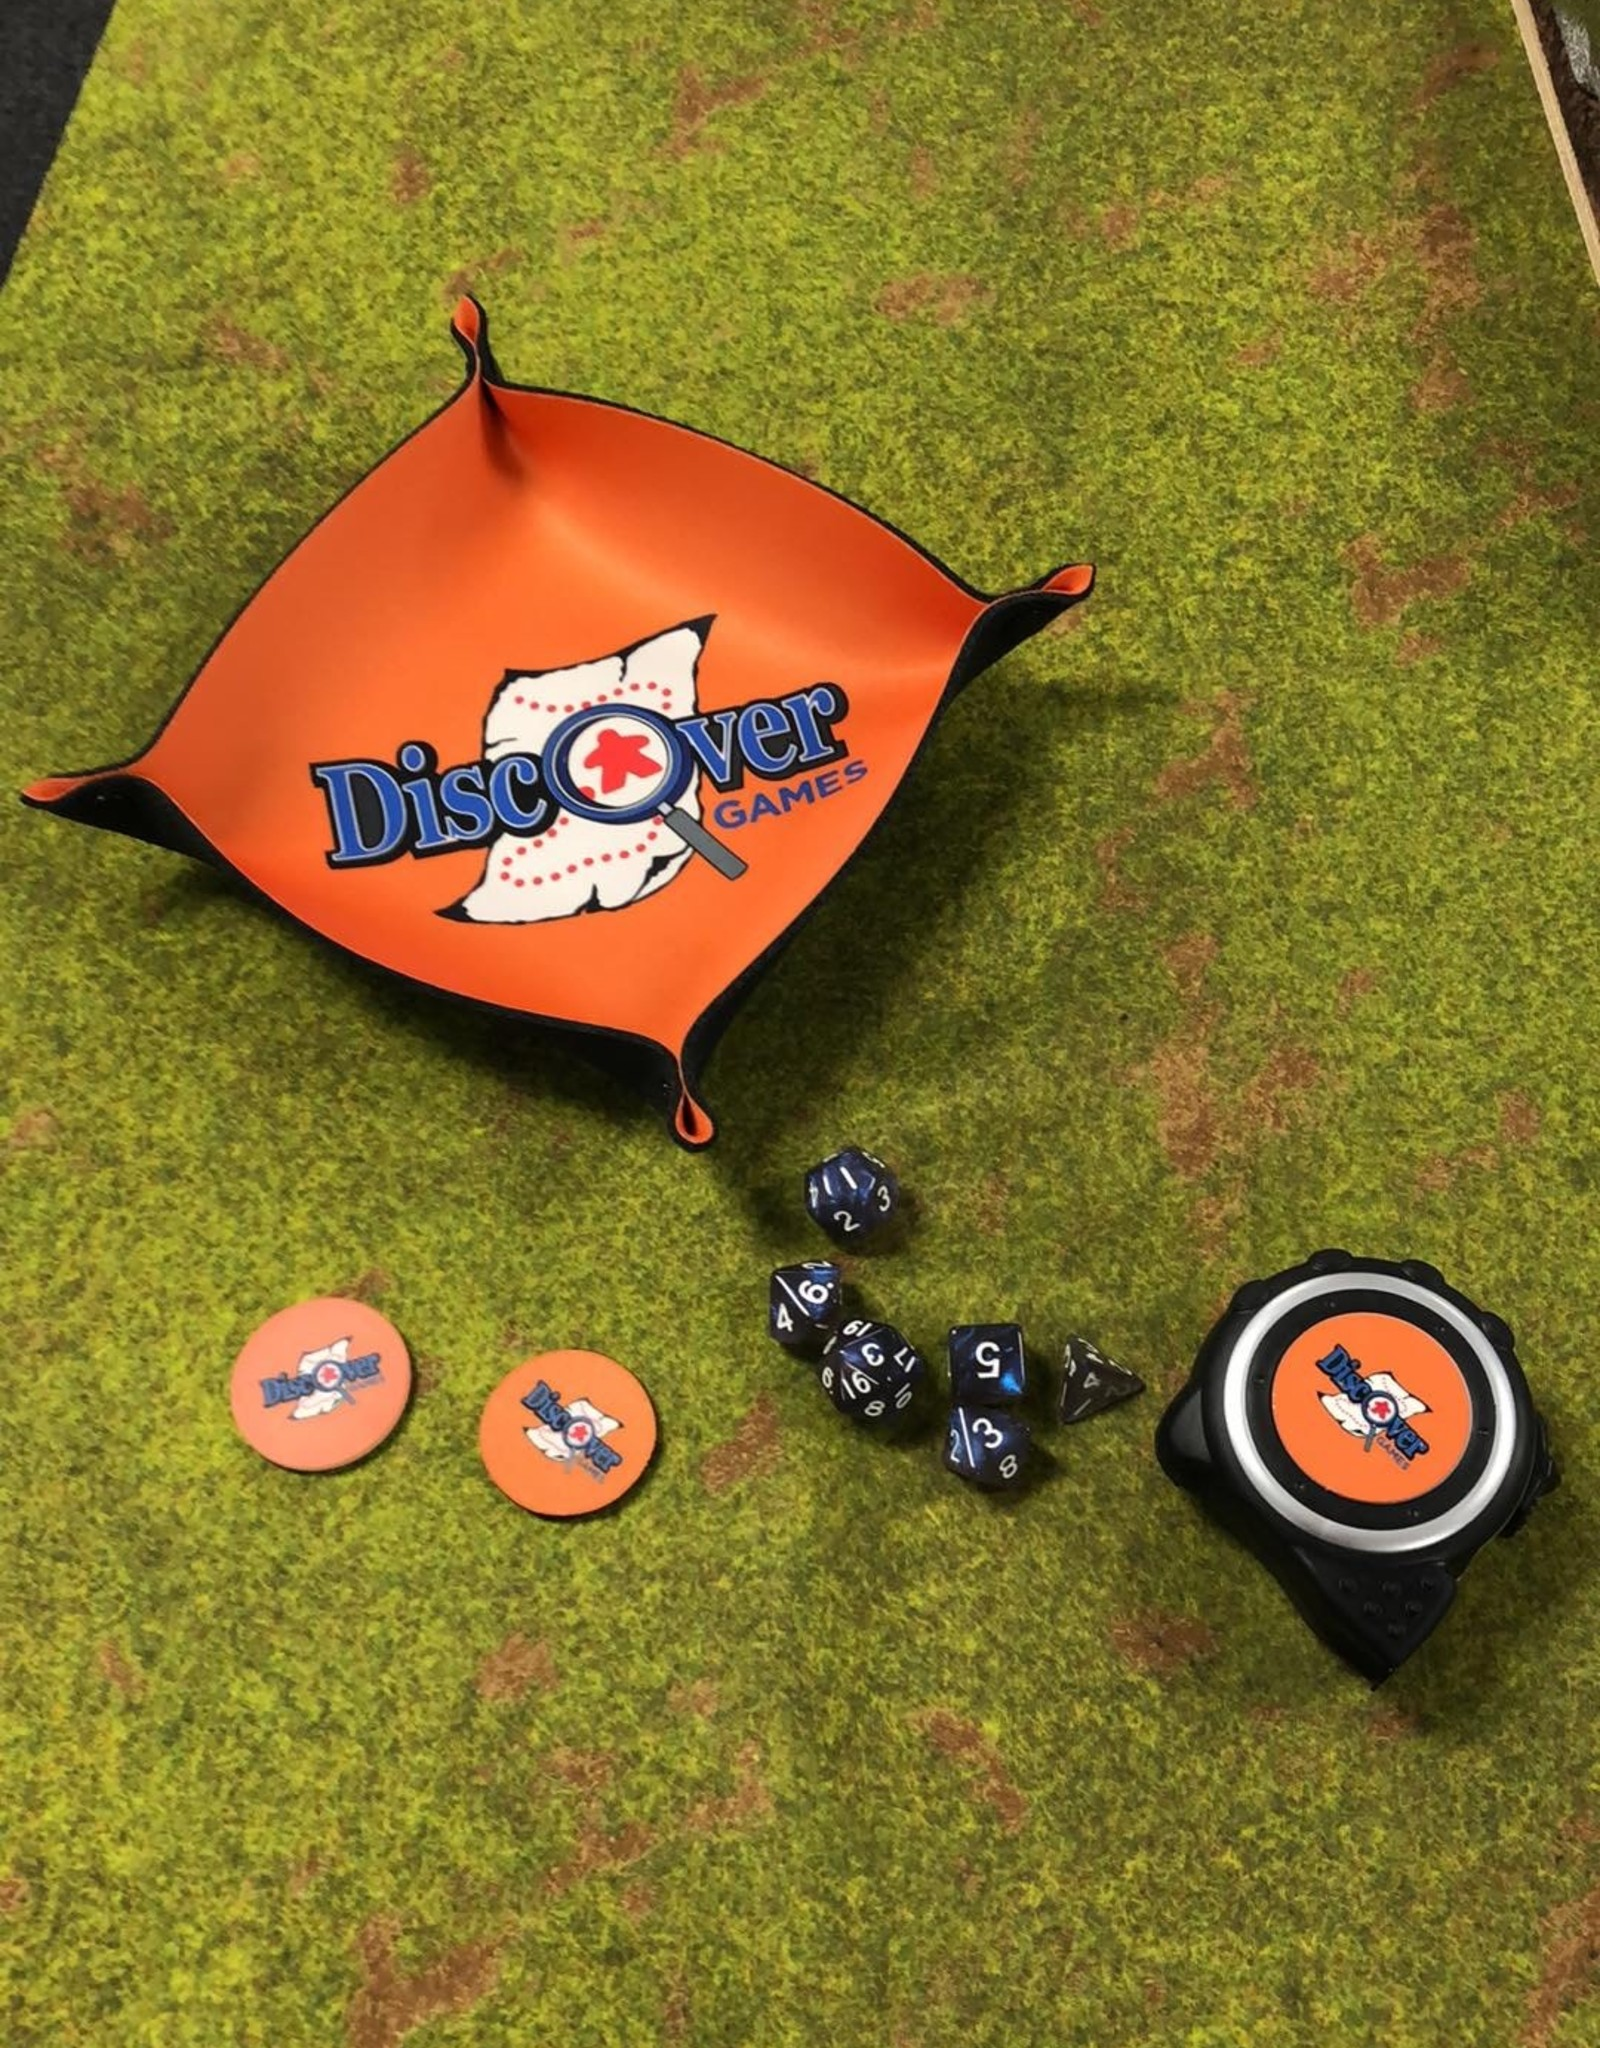 Dice Tray - Discover Games